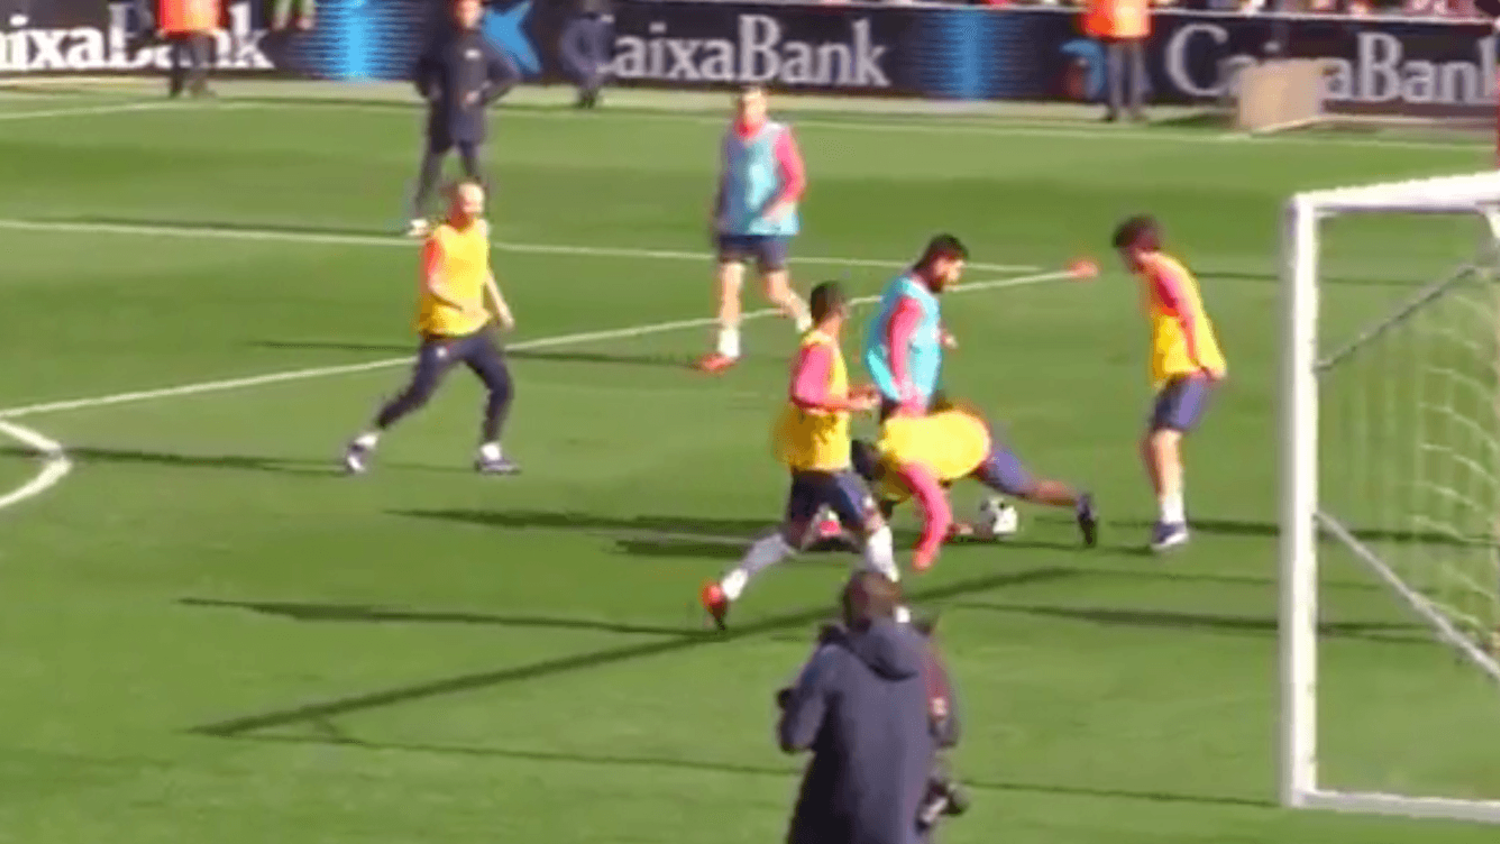 Lionel Messi pulls off outrageous double nutmeg in training